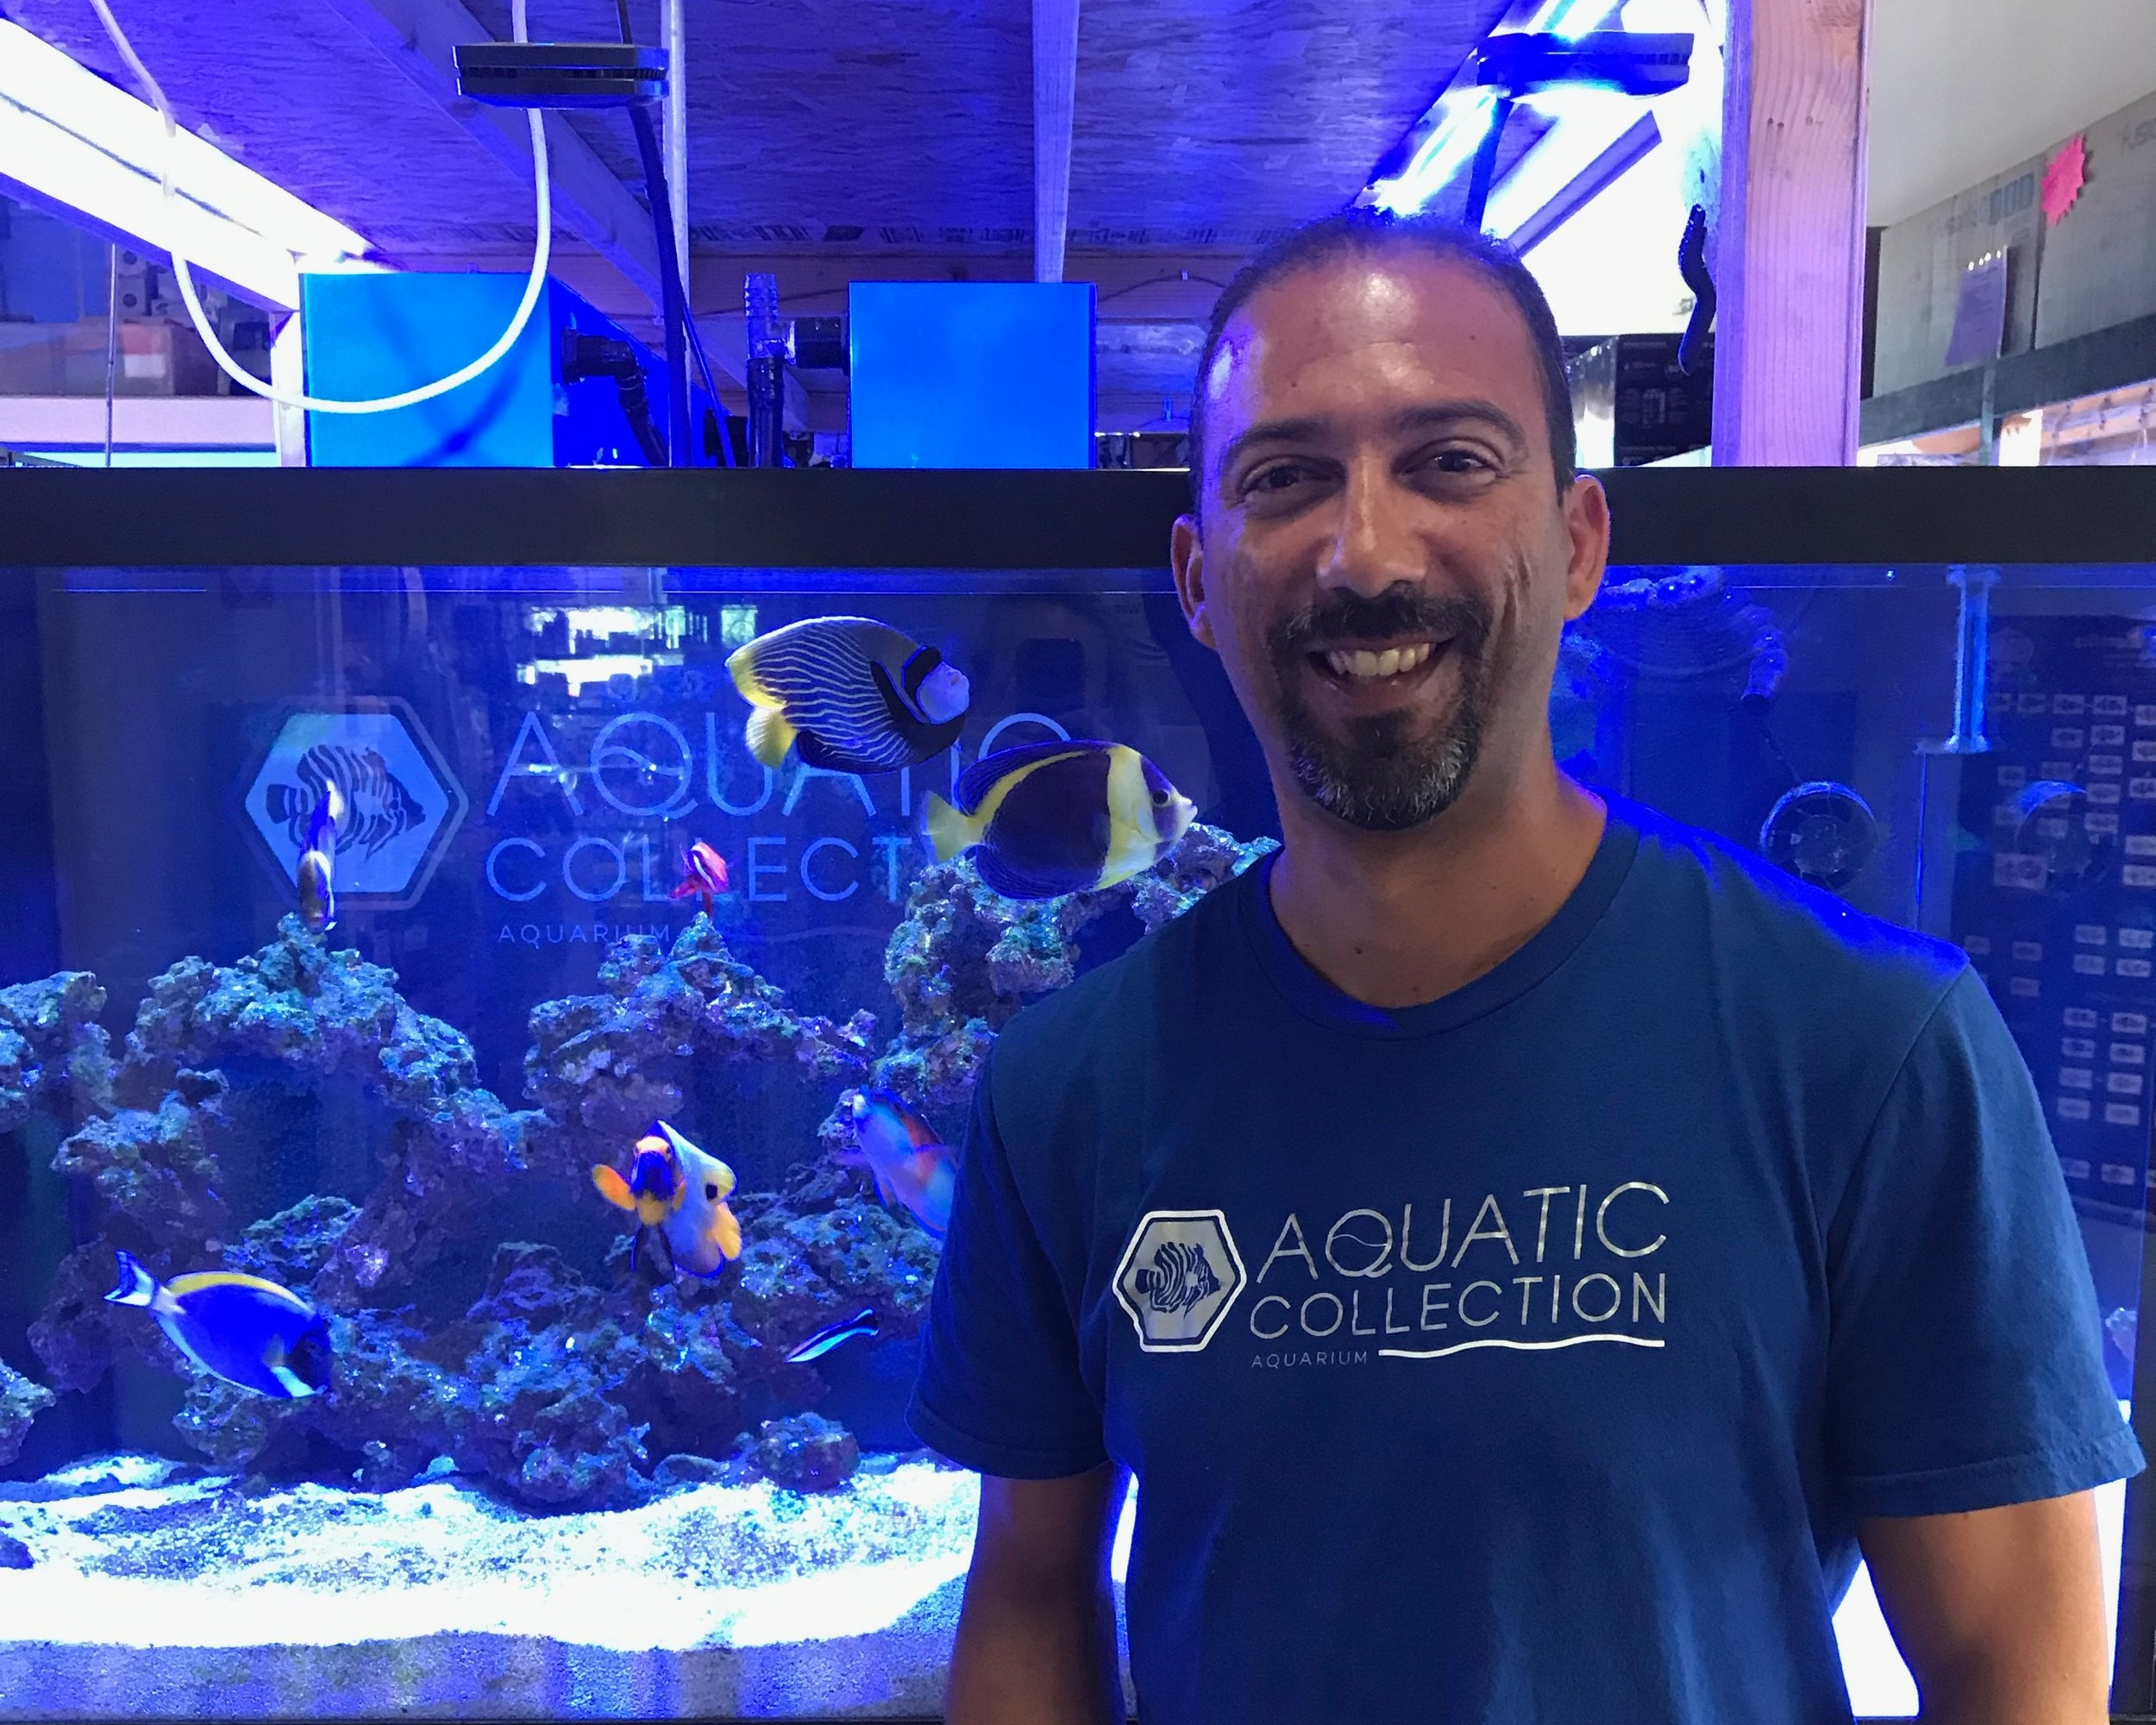 Ramon - Ramon is originally from Puerto Rico and speaks Spanish and English. He has owned aquariums for 18 years. Ramon's favorite fish is the Emperor Angel and he loves ALL coral. Ramon used to work as a Sport Fishing Boat Captain and loves watching football (NFL).